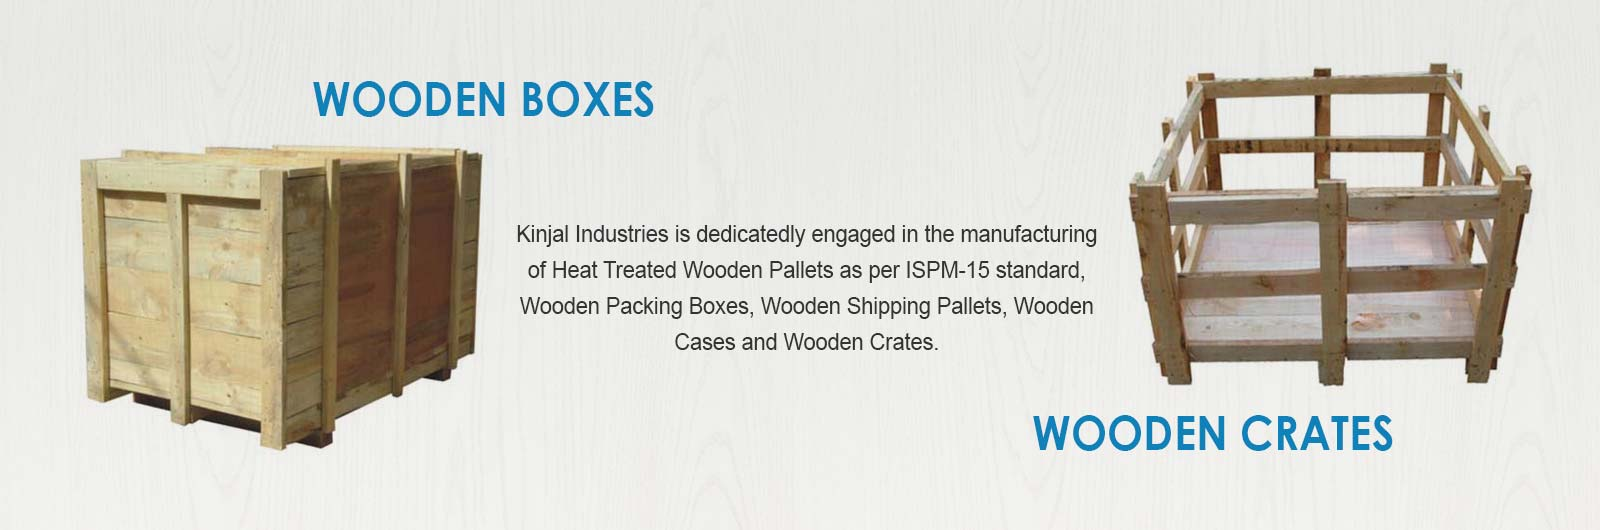 Wooden Boxes, Wooden Crates Manufacturers in Somnath